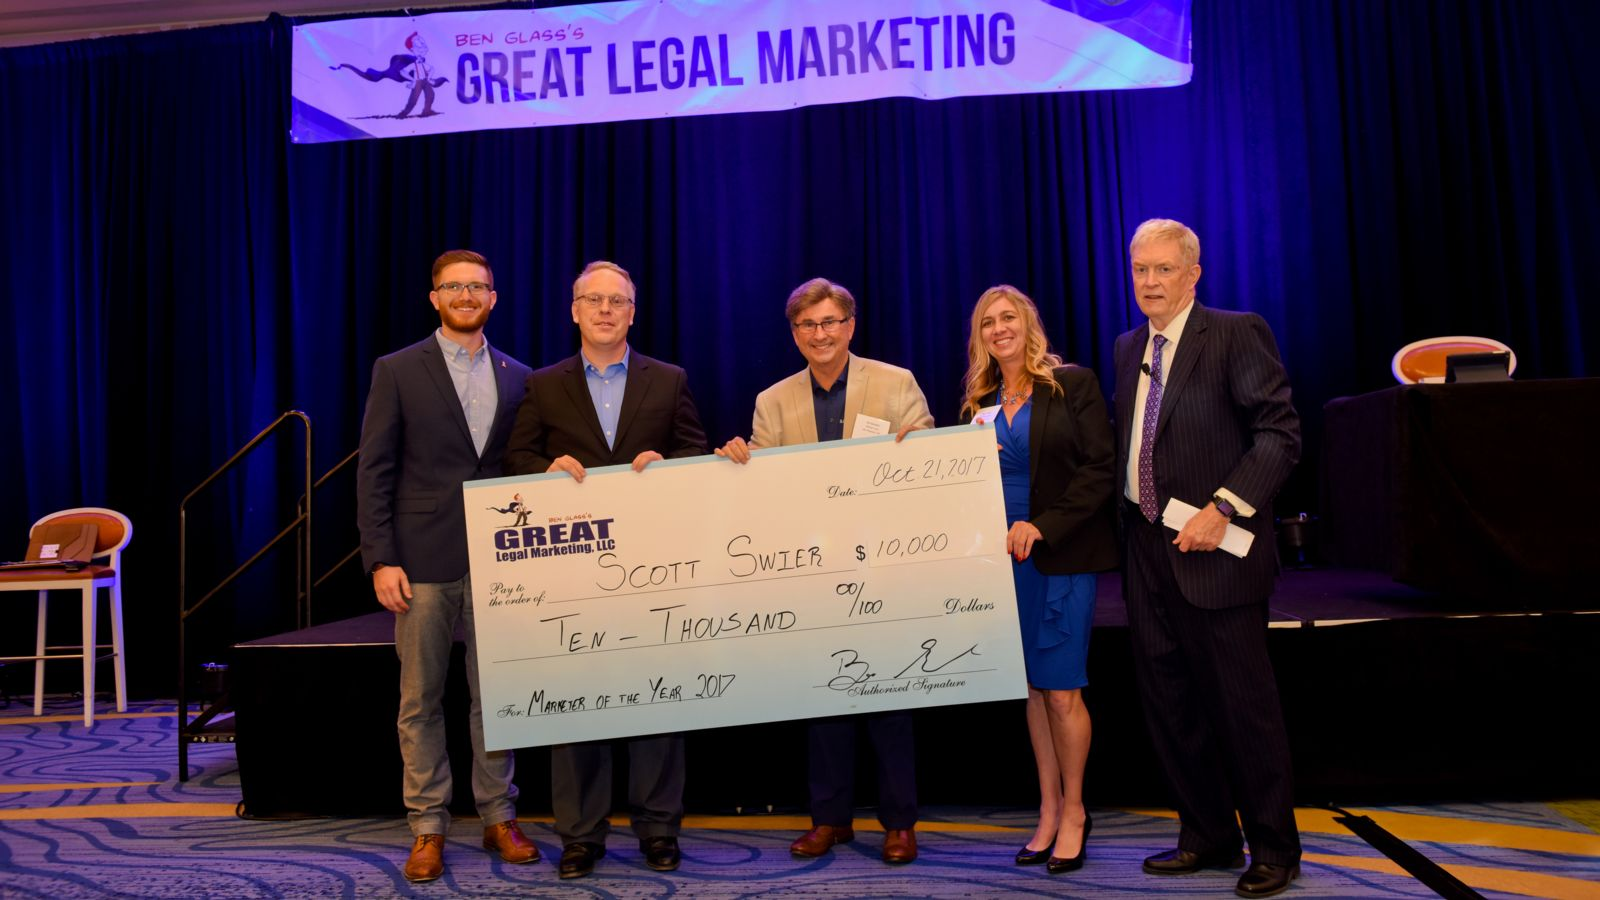 Great Legal Marketing Conference 2017